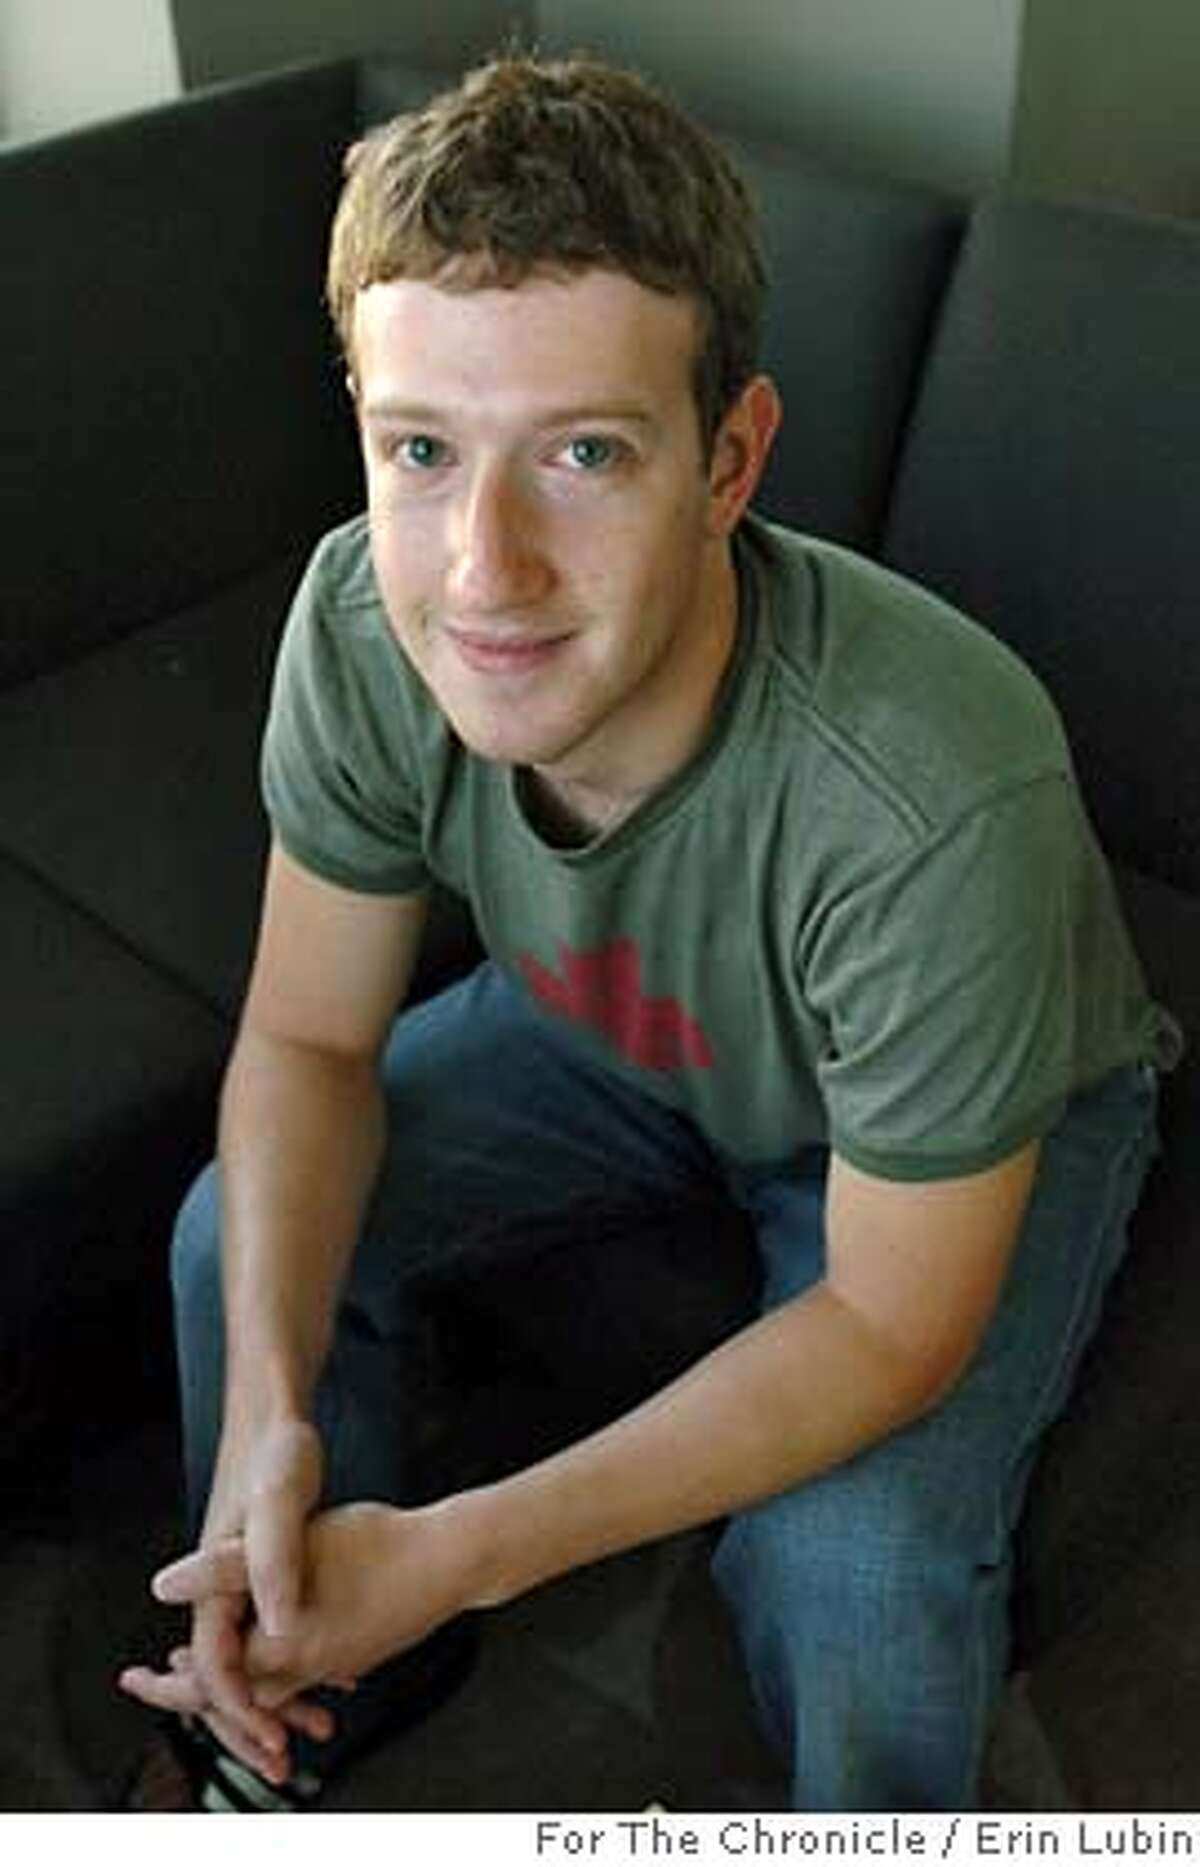 FACEBOOK_EAL_008.JPG Mark Zuckerberg, Co-founder and CEO of Facebook, sits in the conference room at the Facebook office in downtown Palo Alto Thursday, August 17, 2006. Facebook is a popular website where college and high school students can put their profile online and connect to their classmates. Event on 8/17/06 in Palo Alto. Erin Lubin / For the Chronicle Ran on: 09-25-2007 Andrew Cuomo, left, New Yorks attorney general, says Facebook, the site started by Mark Zuckerberg, right, doesnt do enough to stop sexual predators. Ran on: 10-25-2007 Ran on: 10-25-2007 Ran on: 10-25-2007 Ran on: 12-23-2007 Mark Zuckerberg, co-founder and CEO of Facebook, has had an eventful year, from a big Microsoft investment to an uproar over privacy concerns by users of the popular site.